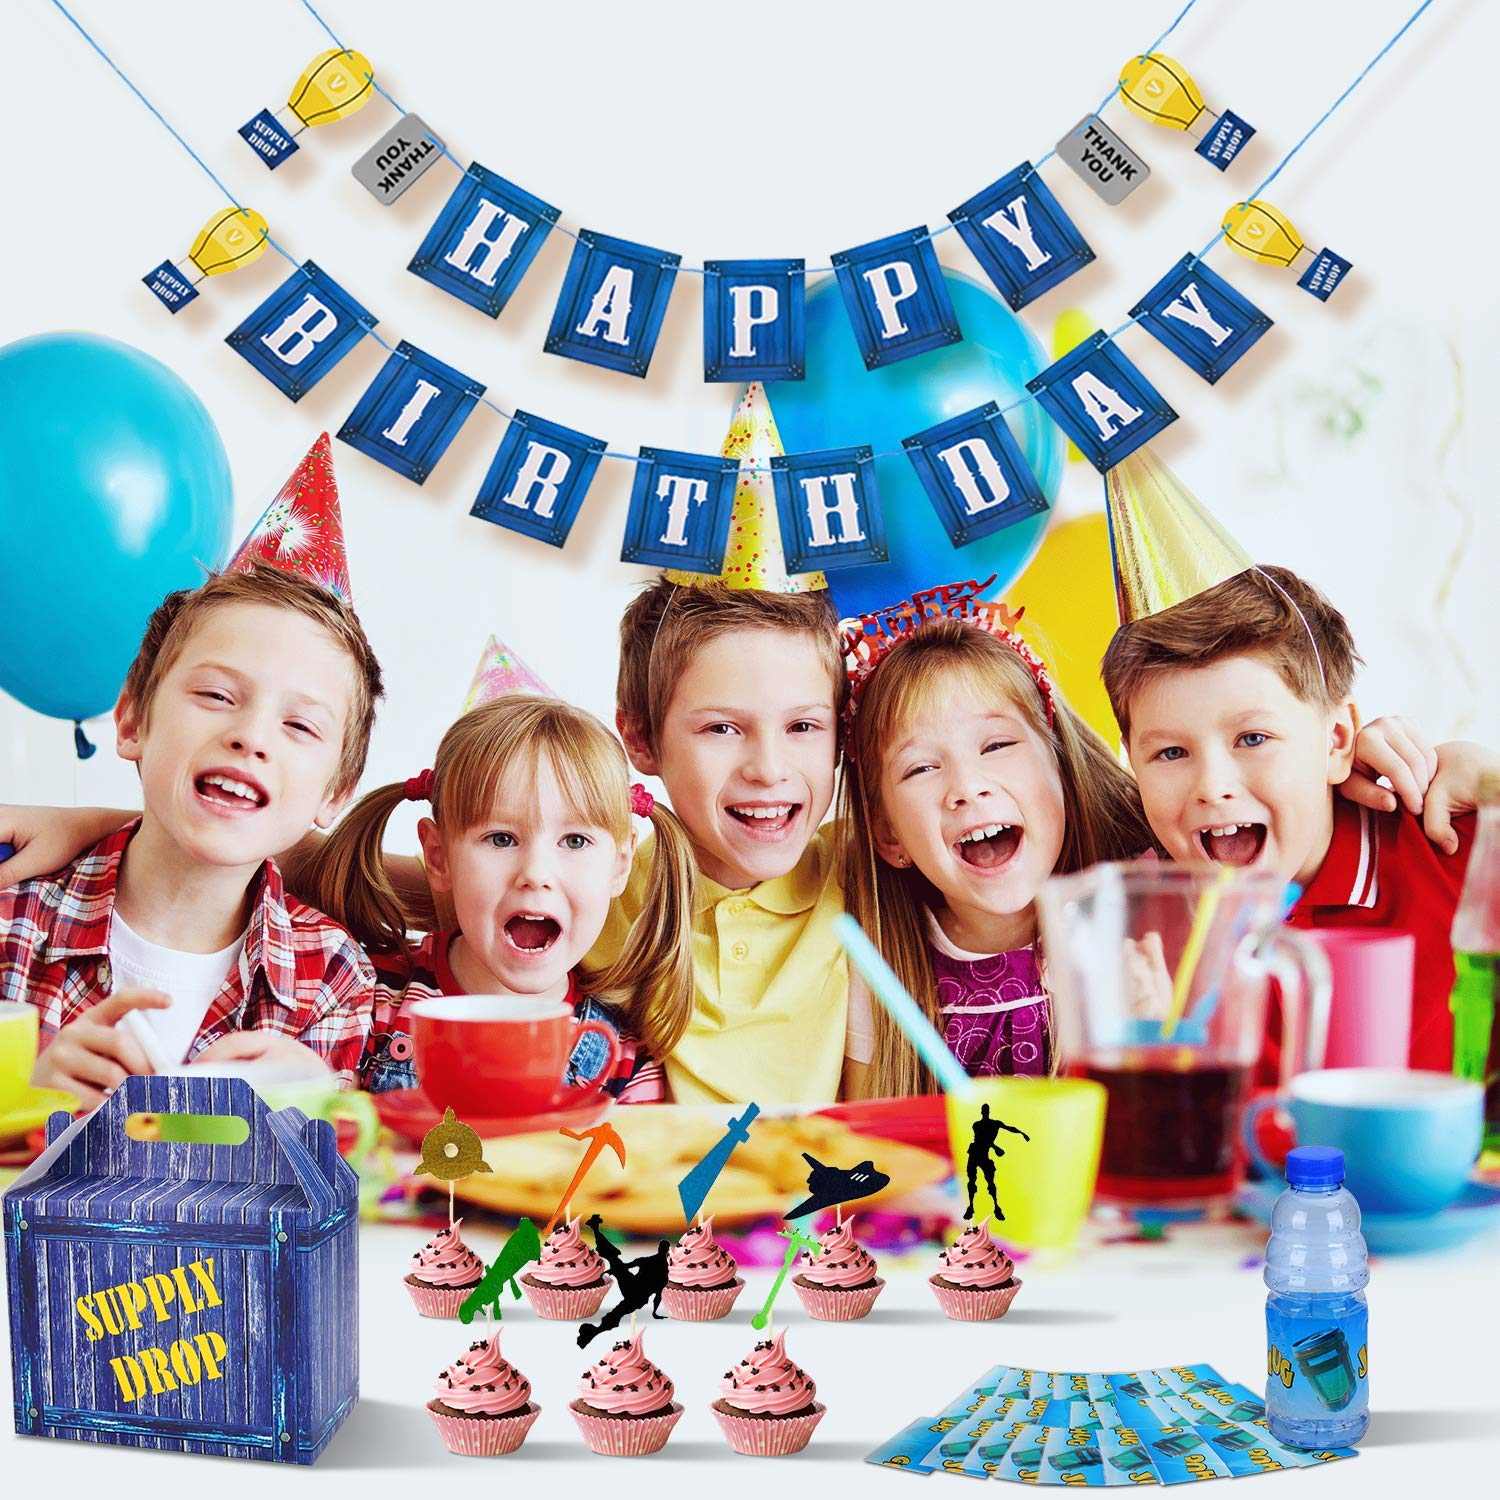 Birthday Party Supplies Set for Game Themed-Including 24 Chug Jug Bottle Labels,24 Game Party Drop Box,24 Cupcake Toppers(24 Styles),1 Birthday Party Banner by Esjay (Image #6)